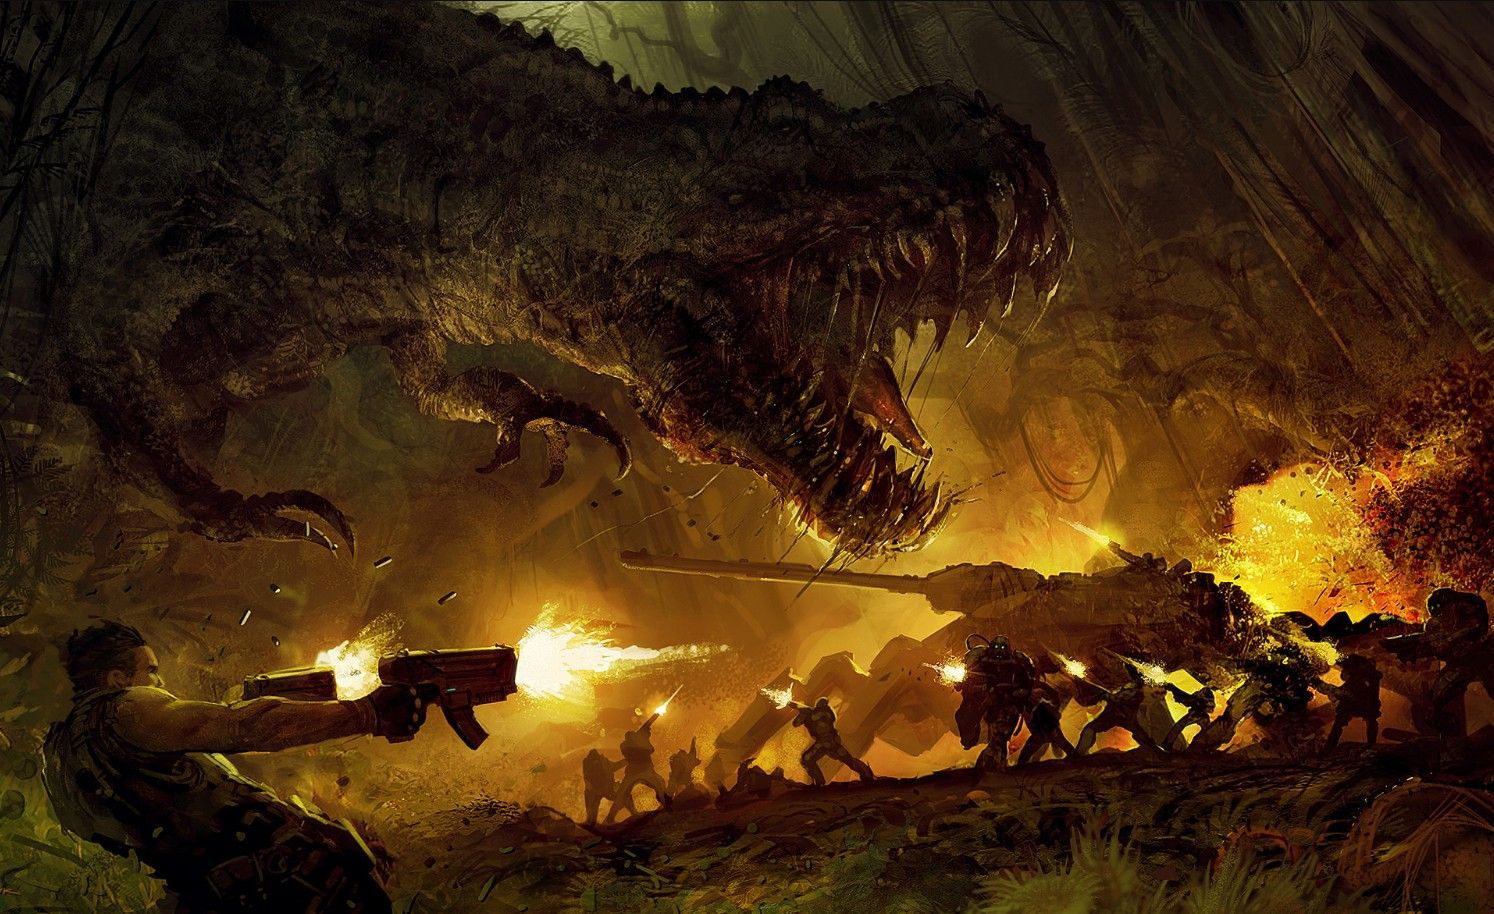 Pin By Tim Moore On Dark Souls 2 Jurassic World Wallpaper World Wallpaper Animated Wallpapers For Mobile